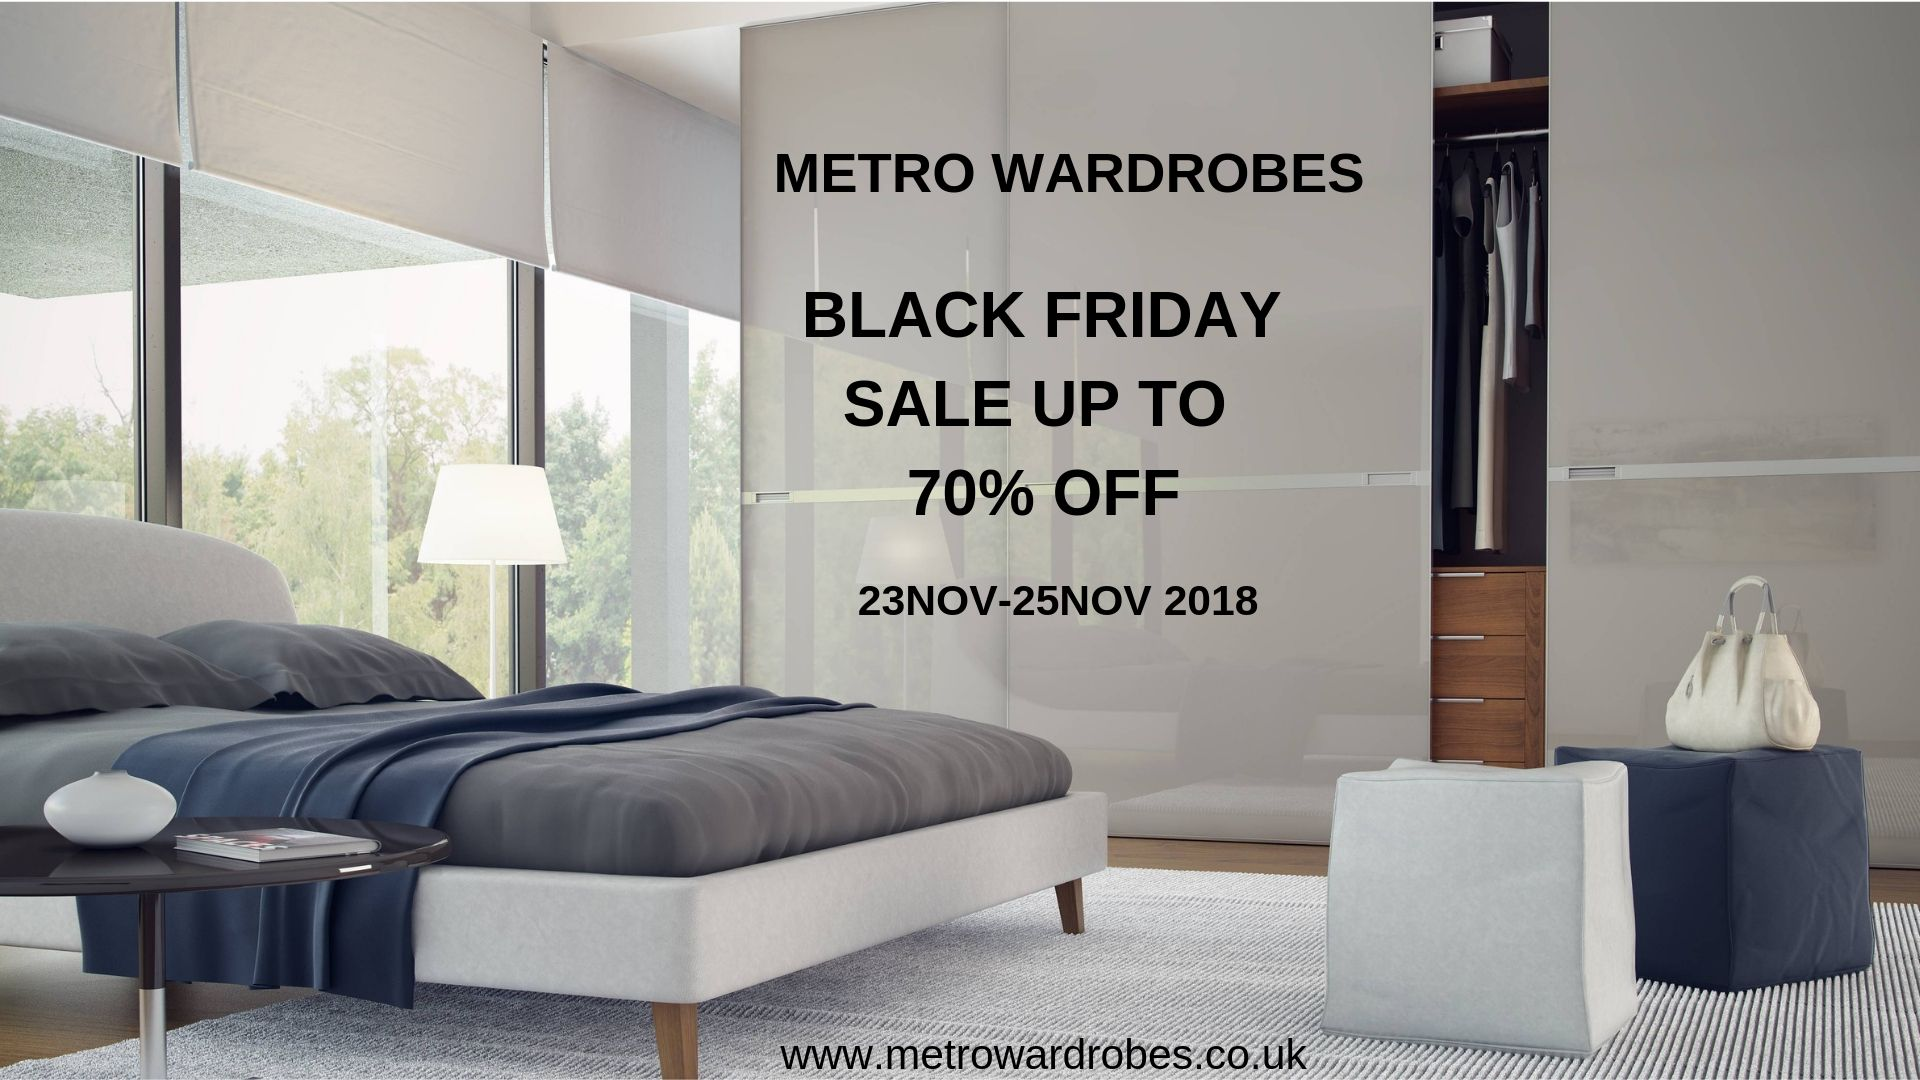 Metro Wardrobes is up with BLACK FRIDAY SALE 2018!!! Book